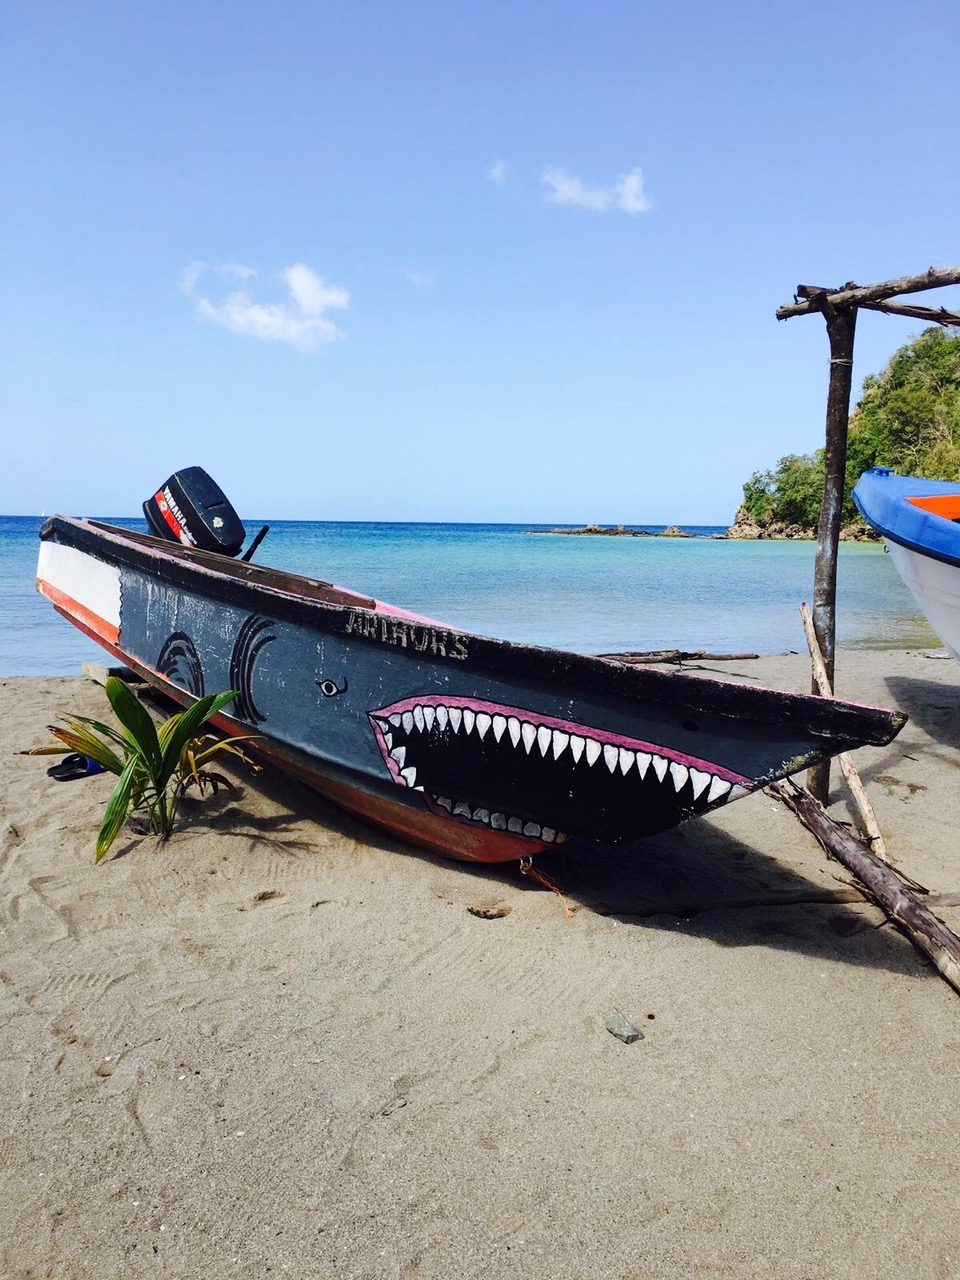 Angemaltes altes Holzboot am Strand bei Anse La Raye, St. Lucia